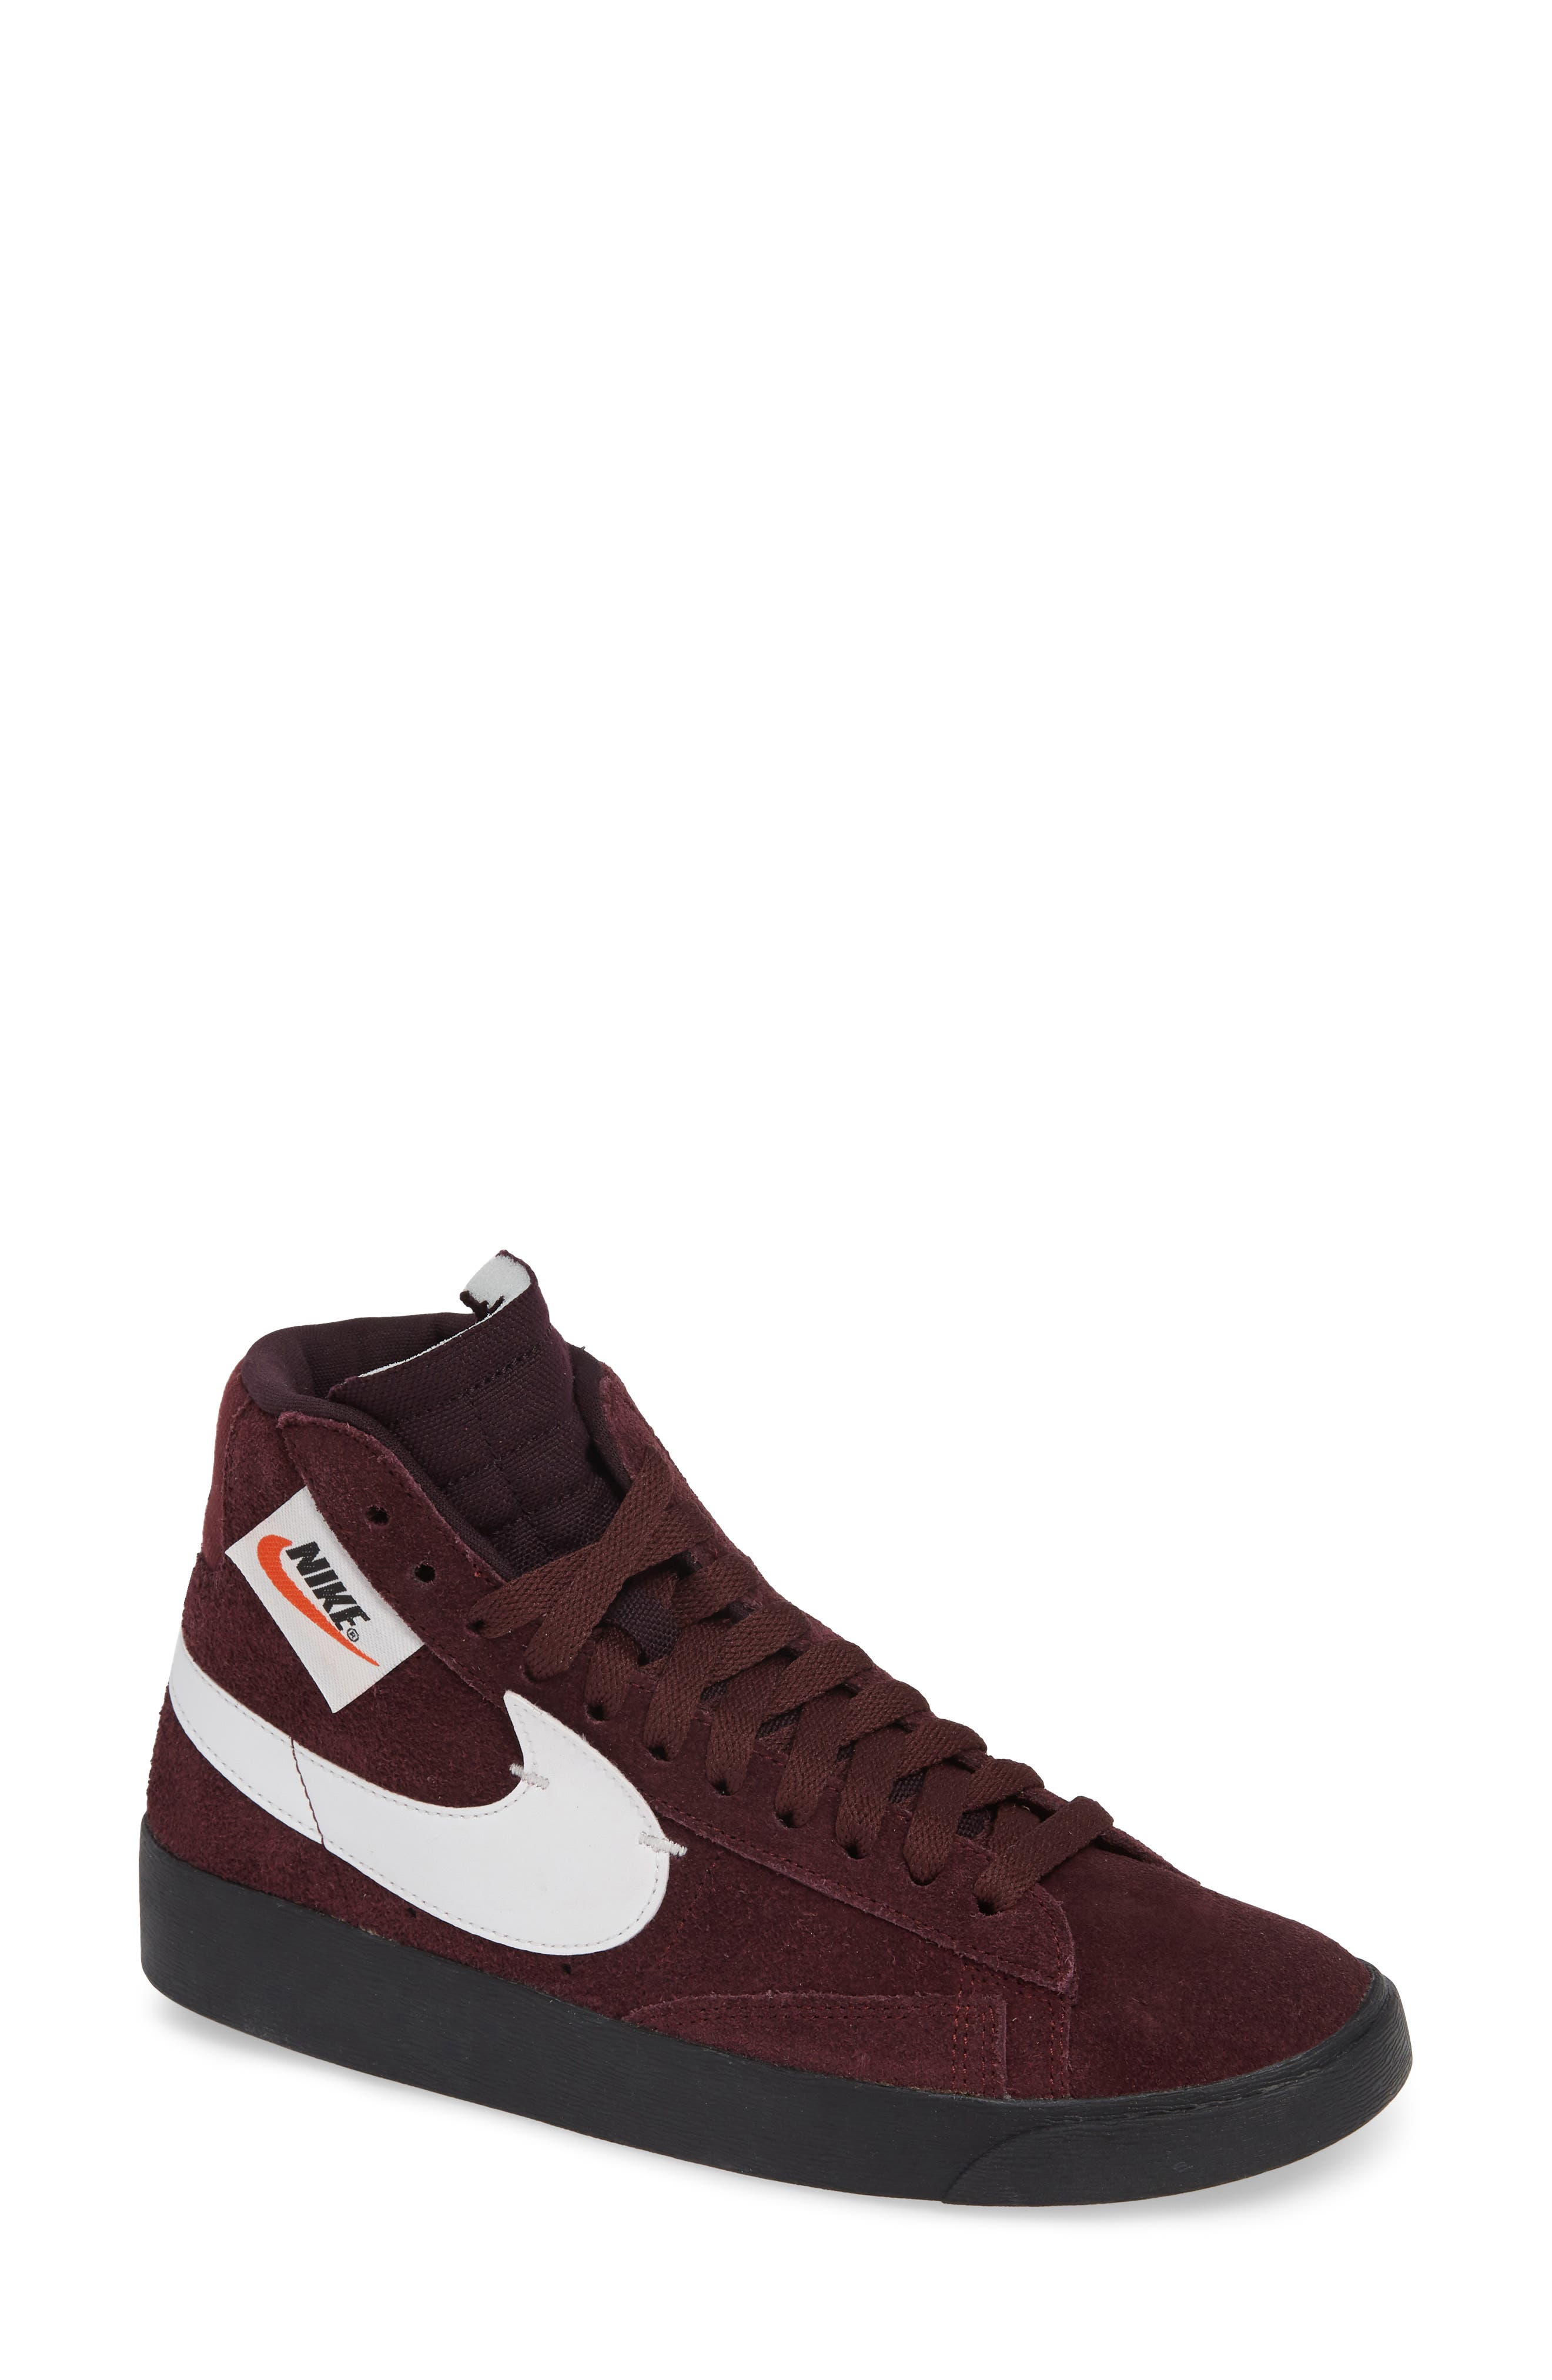 Blazer Mid Rebel Sneaker,                         Main,                         color, BURGUNDY CRUSH/ ASH- WHITE